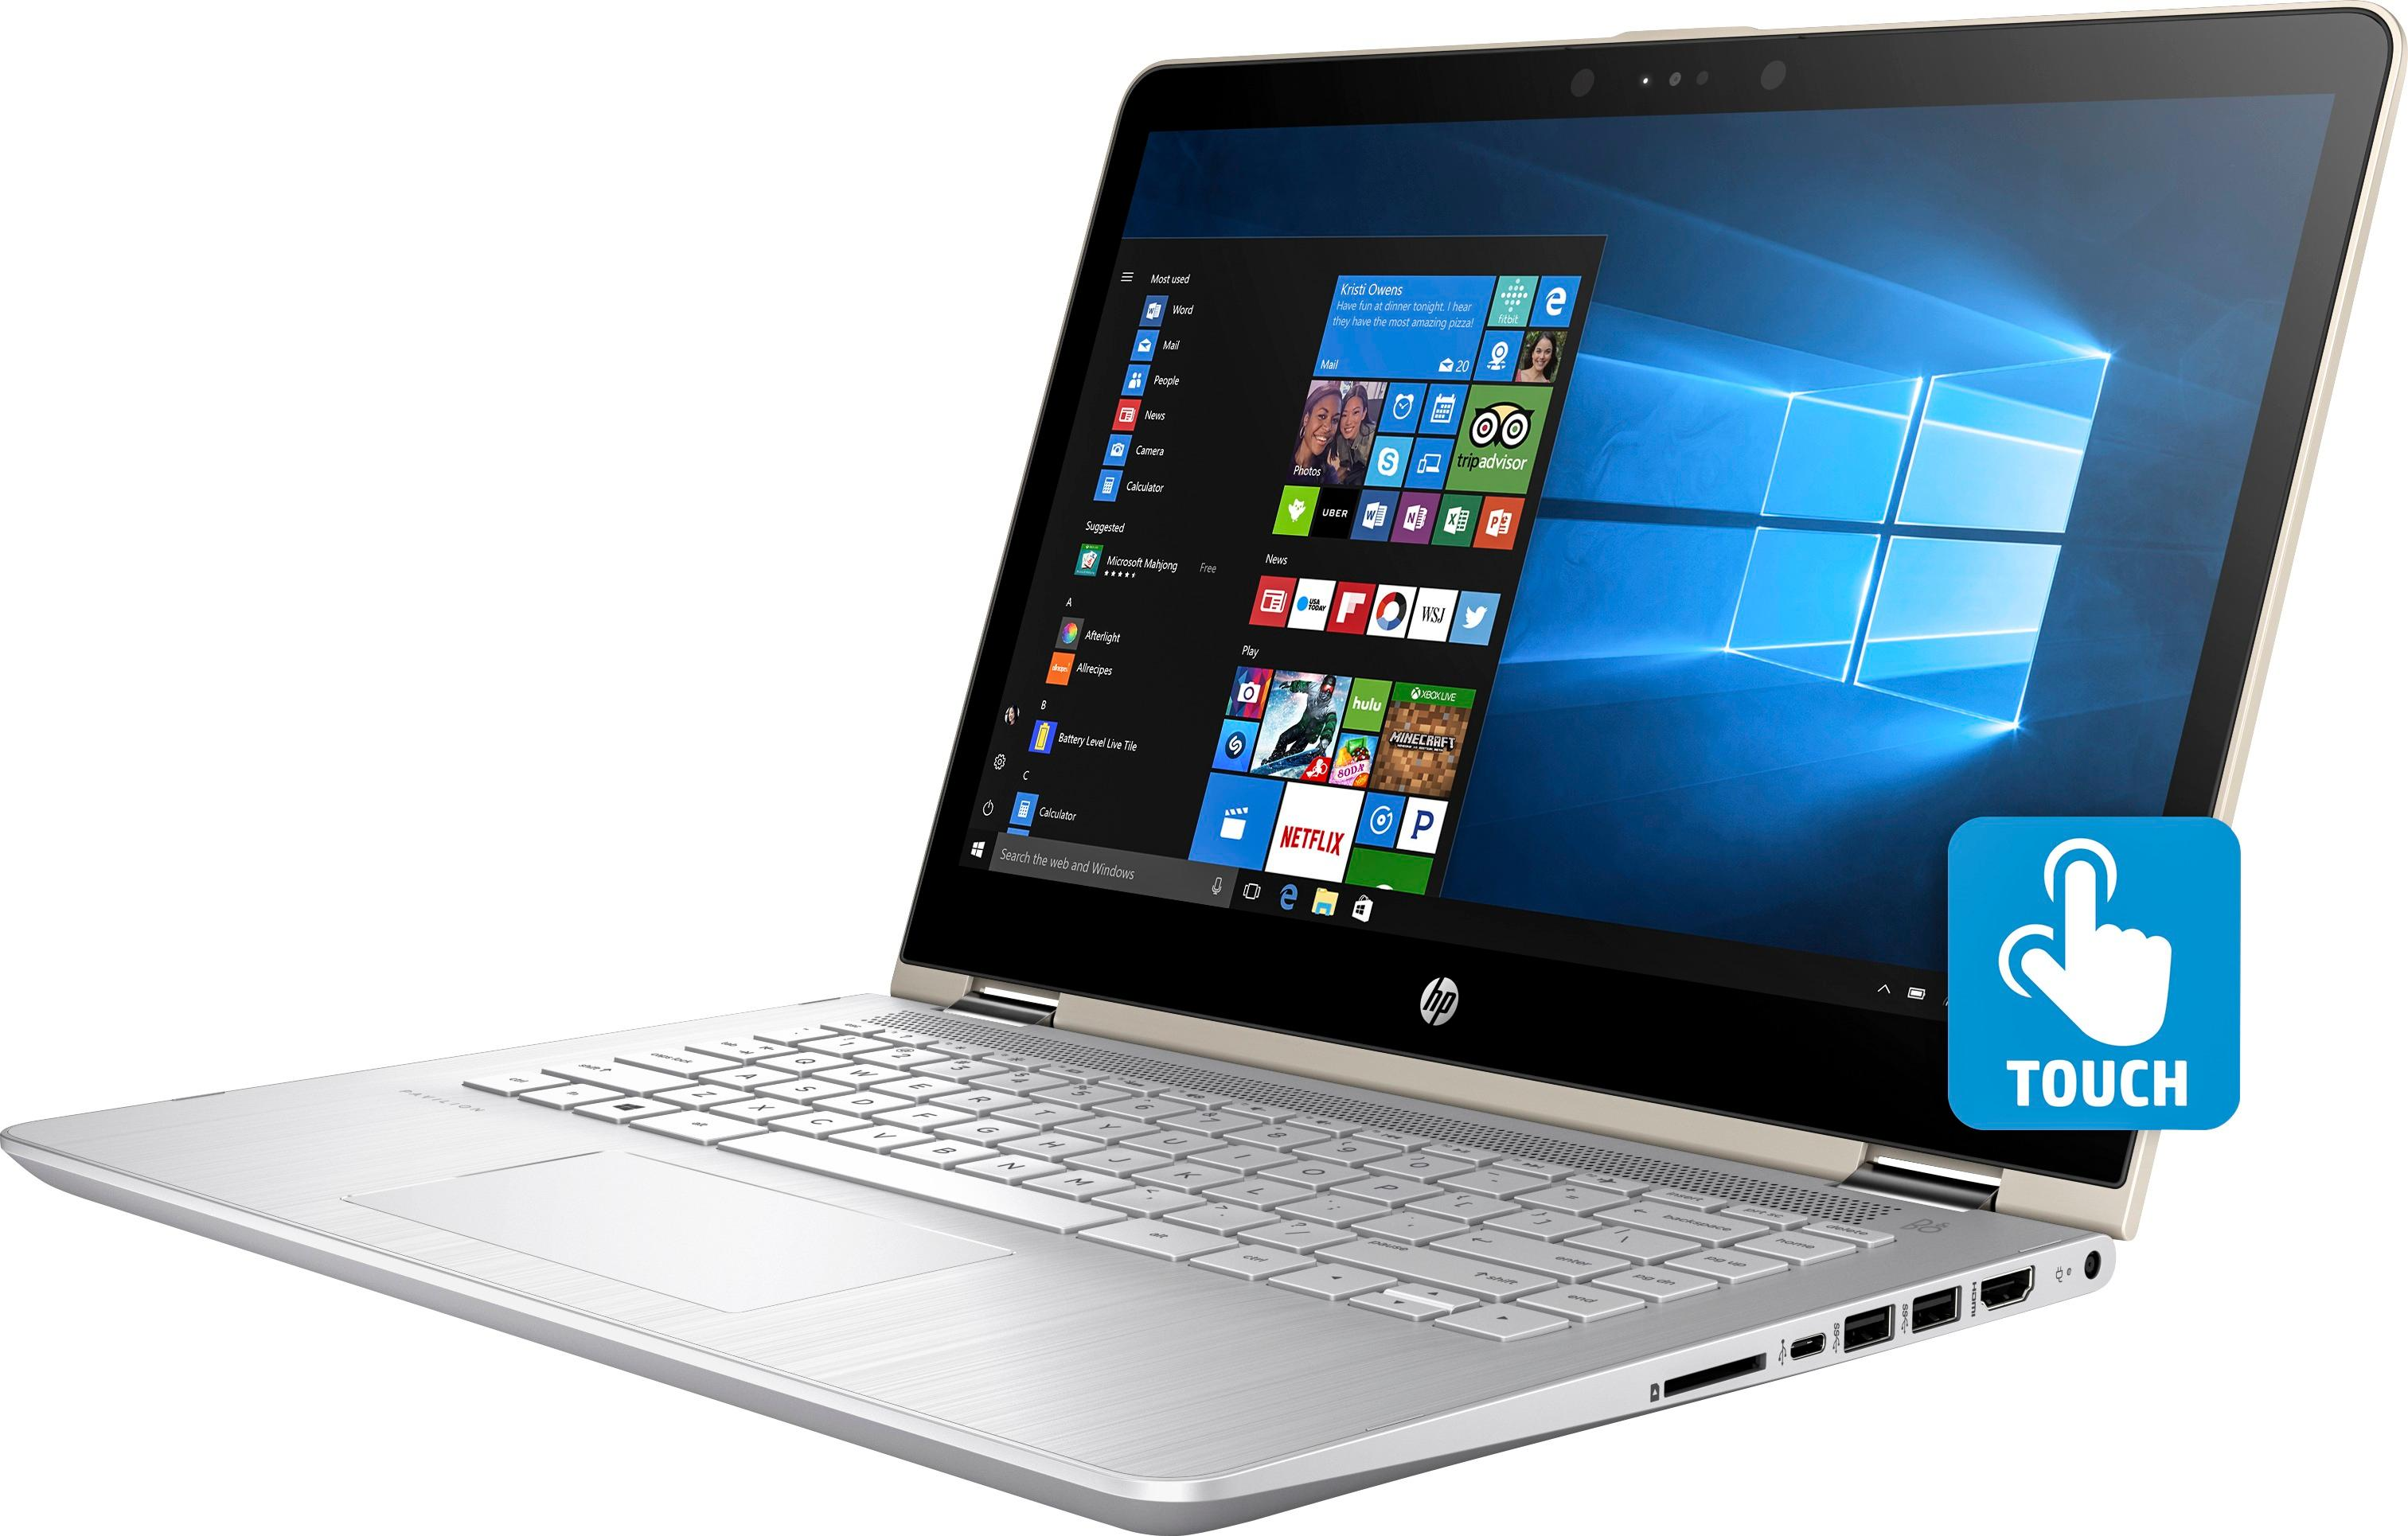 Laptop HP Pavilion x360 11-ad104TU 4MF13PA (Silver) + Pen